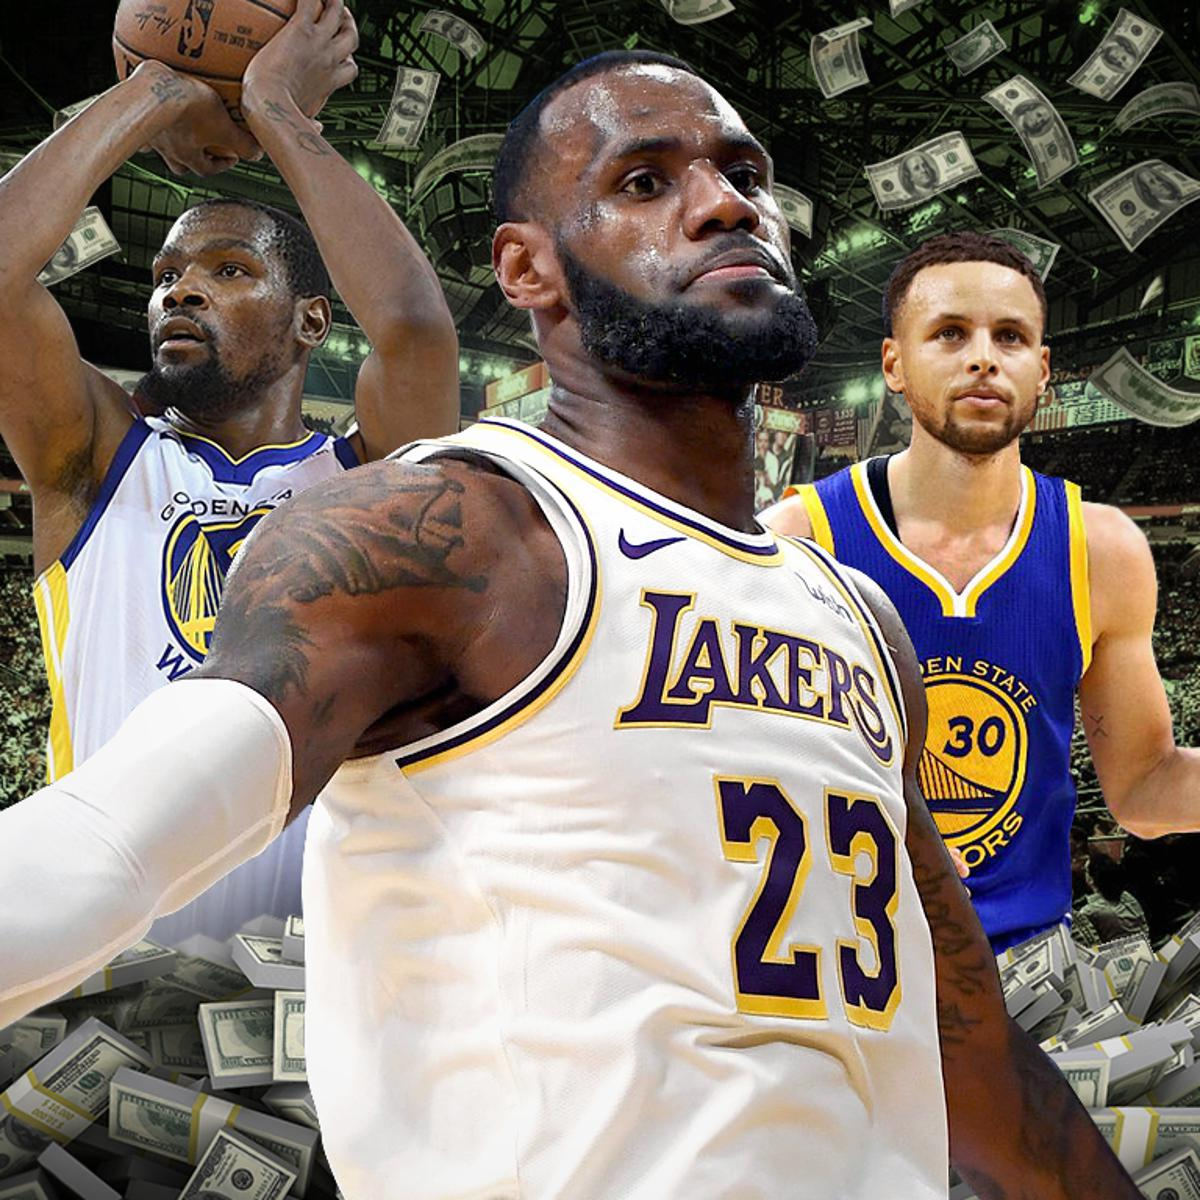 online store 23d7f 433f9 NBA Team Values 2019: Knicks On Top At $4 Billion